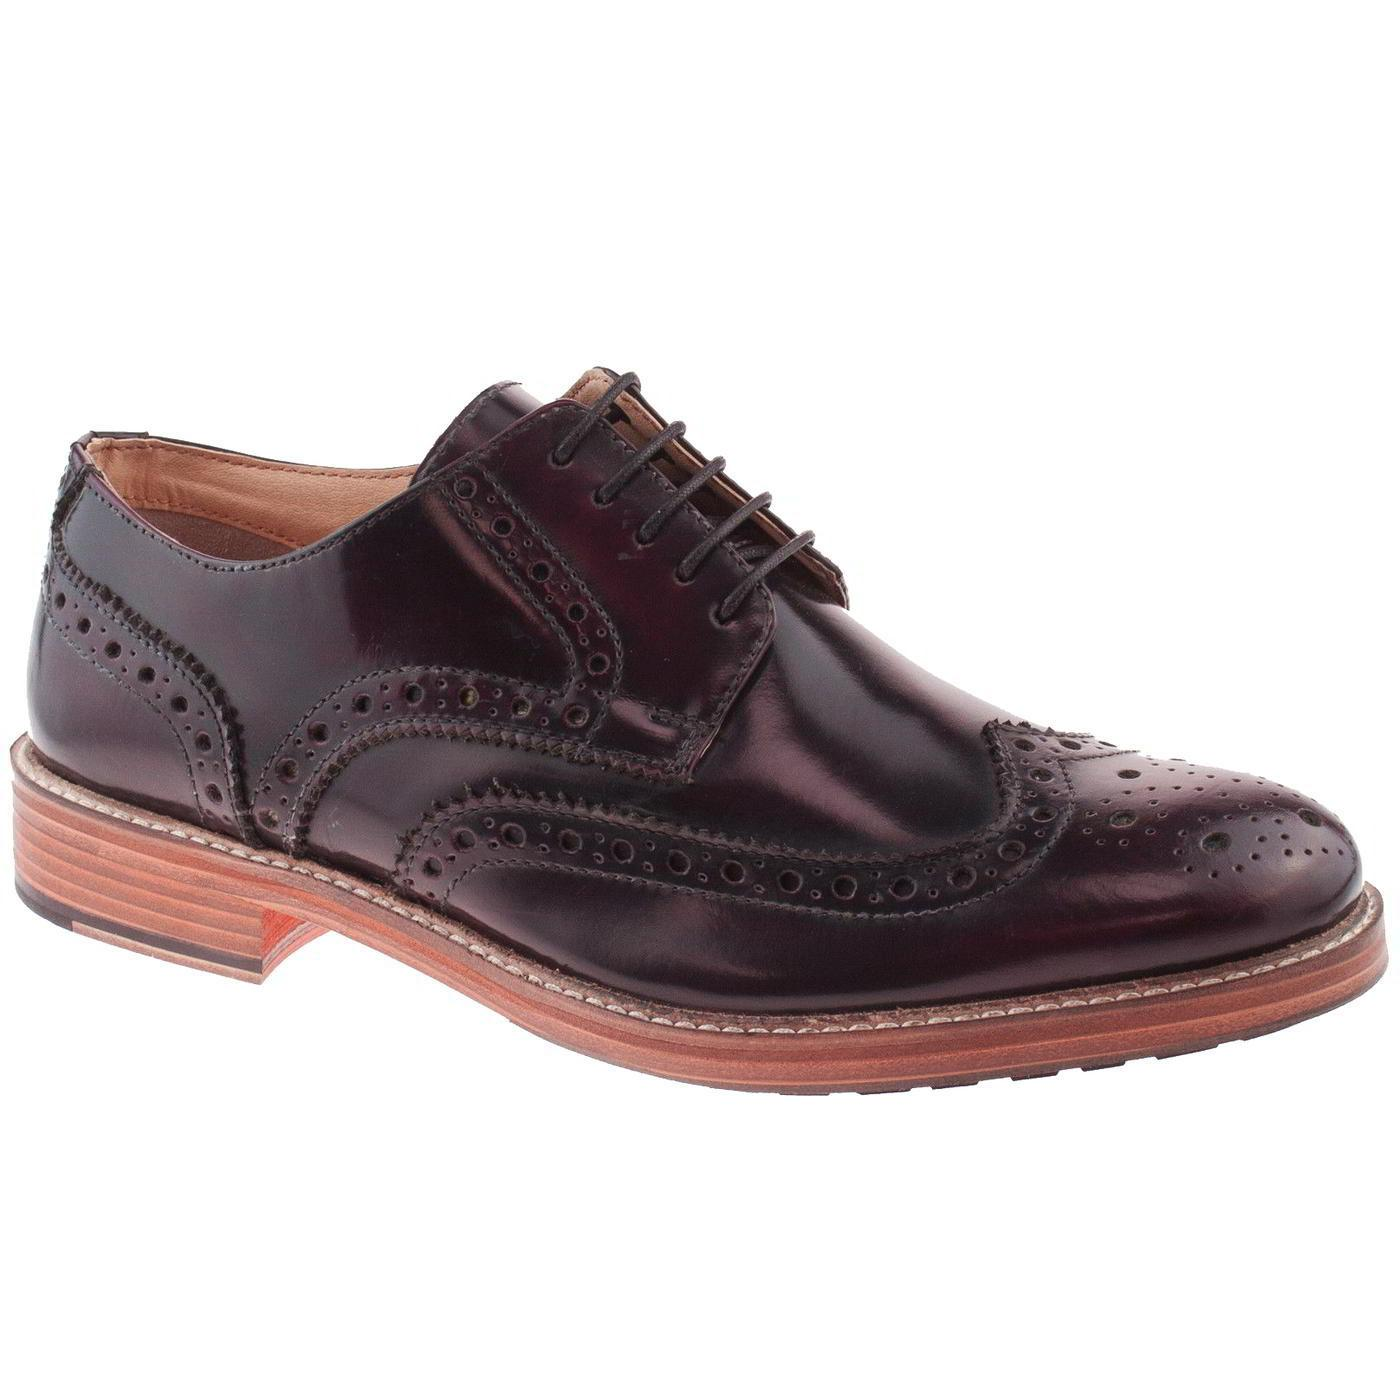 Roamers Mens Leather Brogue Wing Capped Gibson Shoes- UK 11